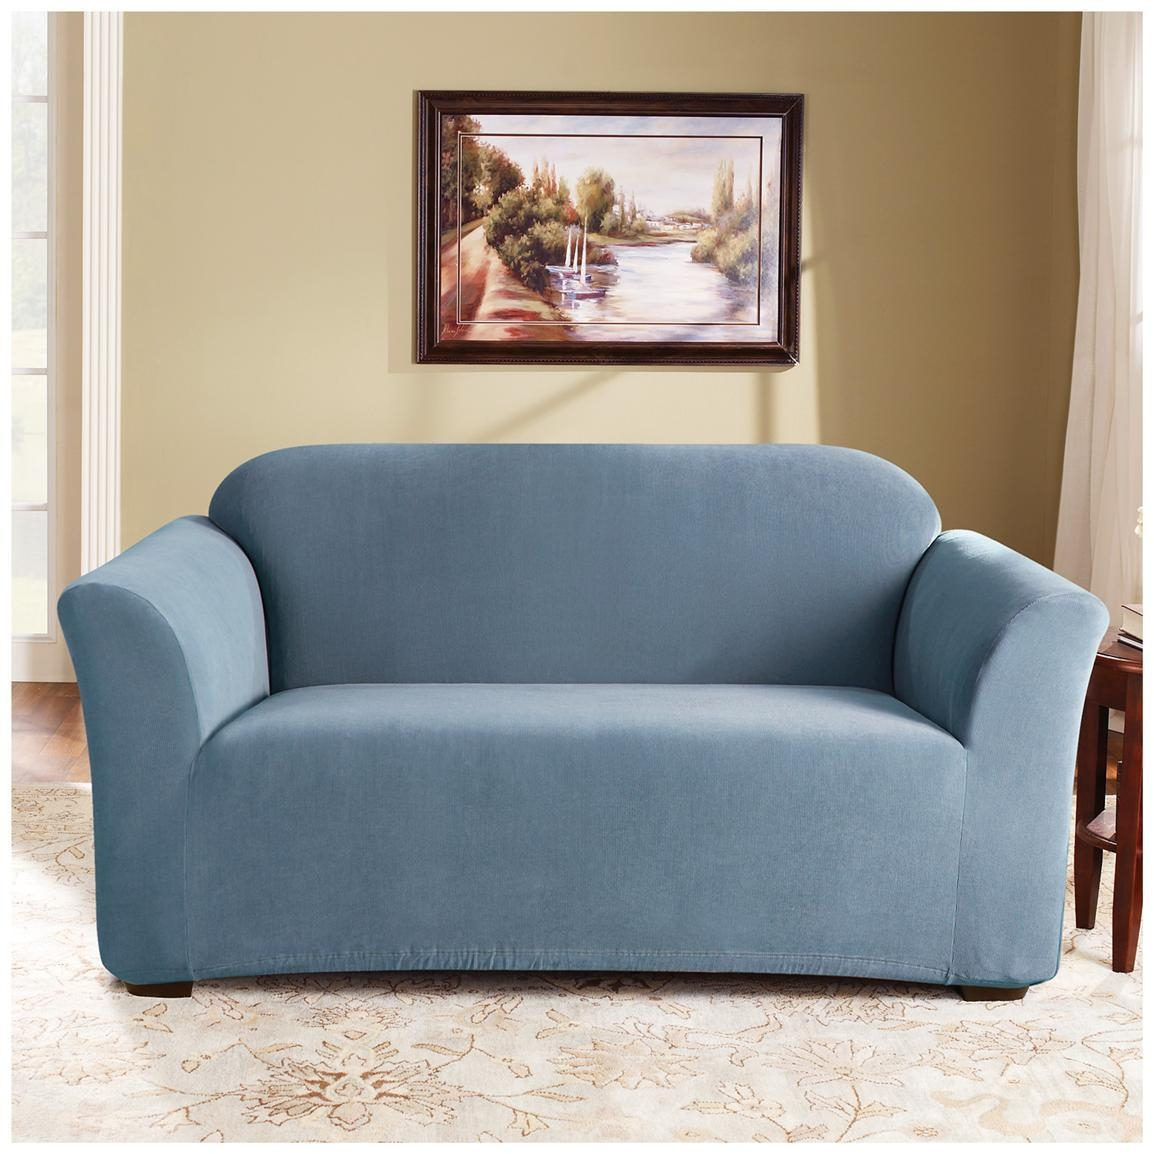 Sure Fit® Stretch Pearson Sofa Slipcover – 292823, Furniture With Regard To Blue Sofa Slipcovers (Image 19 of 20)